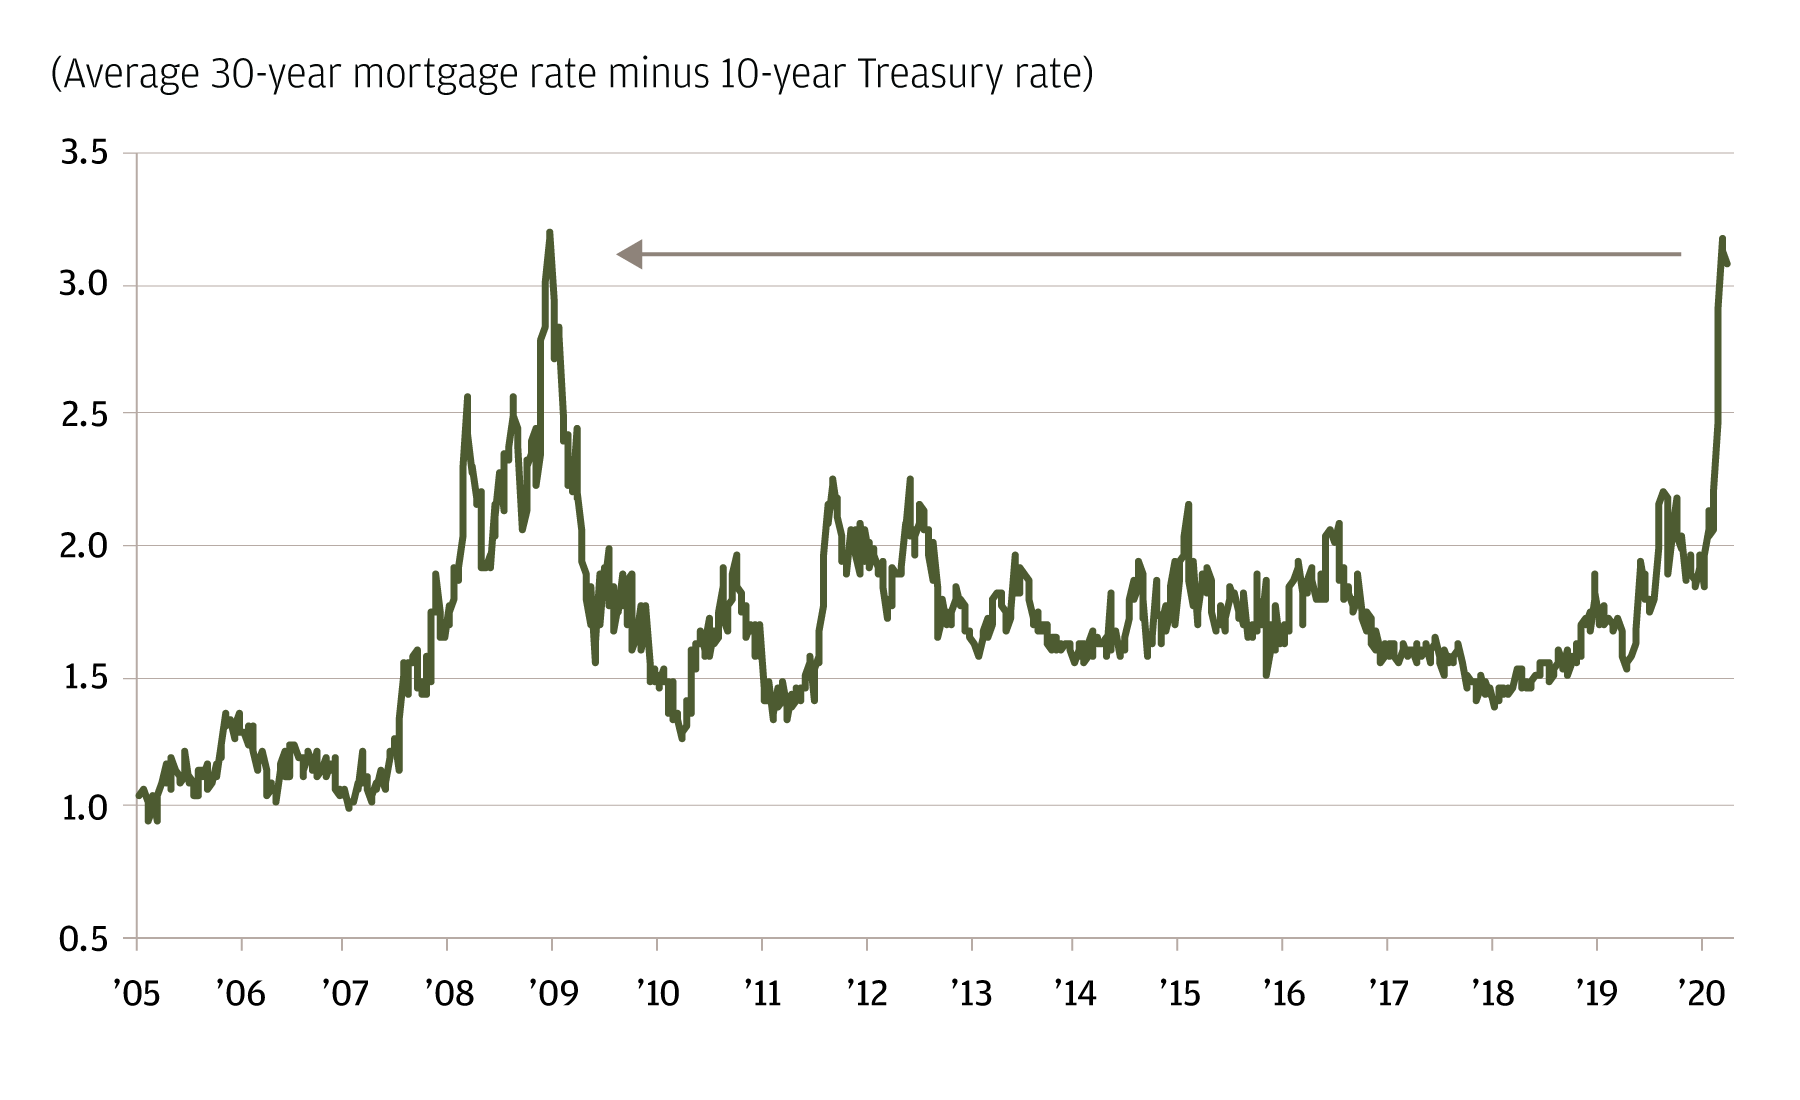 The line chart shows the 30-year mortgage rate with the 10-year Treasury rate subtracted from 2005 through 2020. It shows that the current levels are equal to those during the Global Financial Crisis.